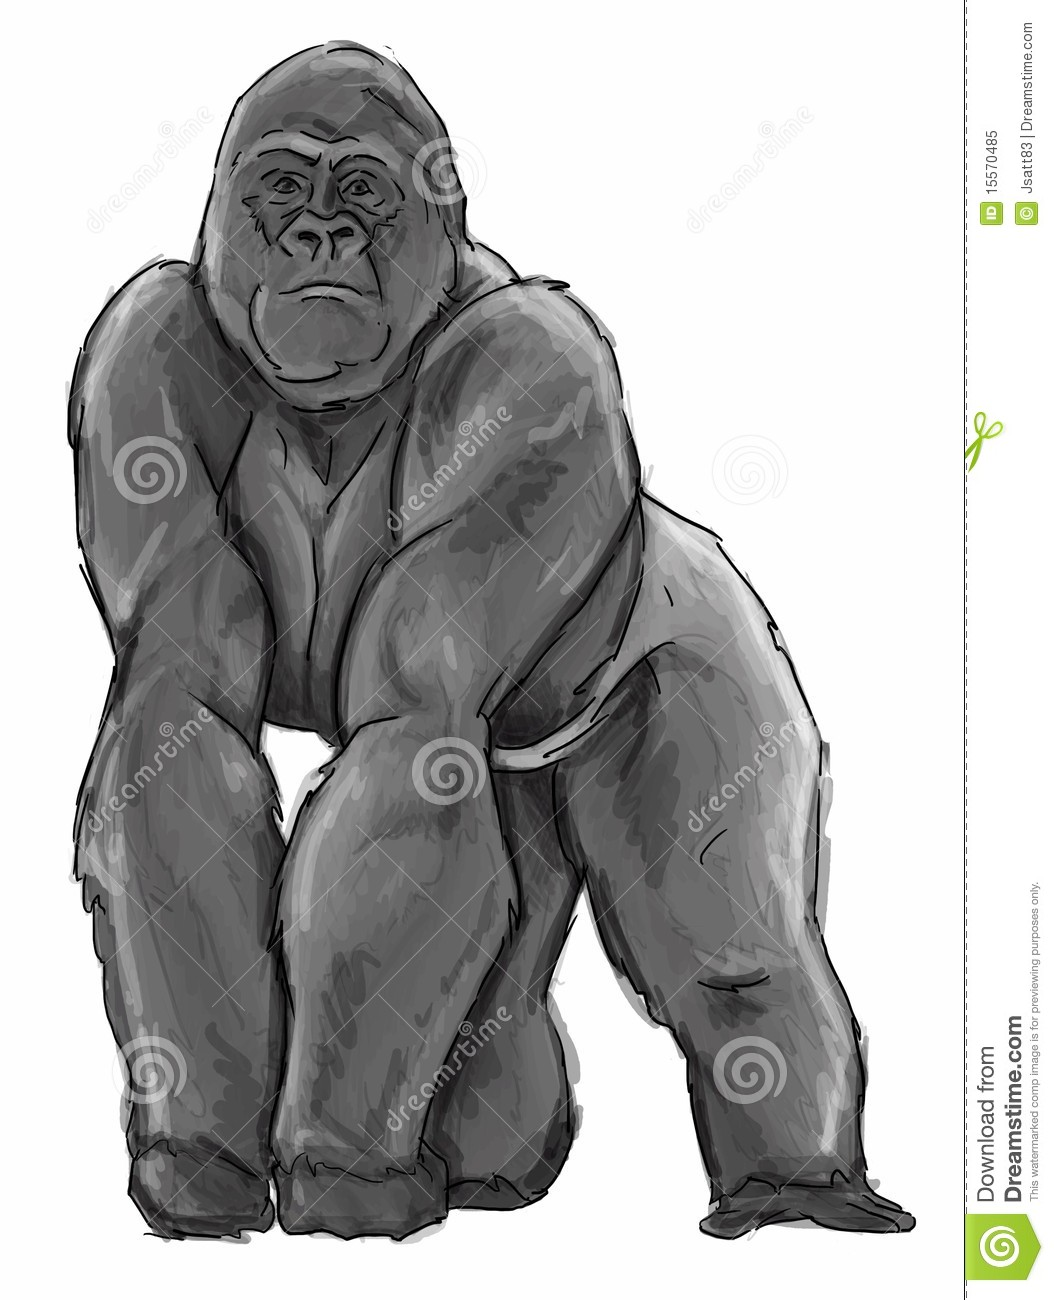 Silverback Gorilla Illustration Royalty Free Stock Photo ...